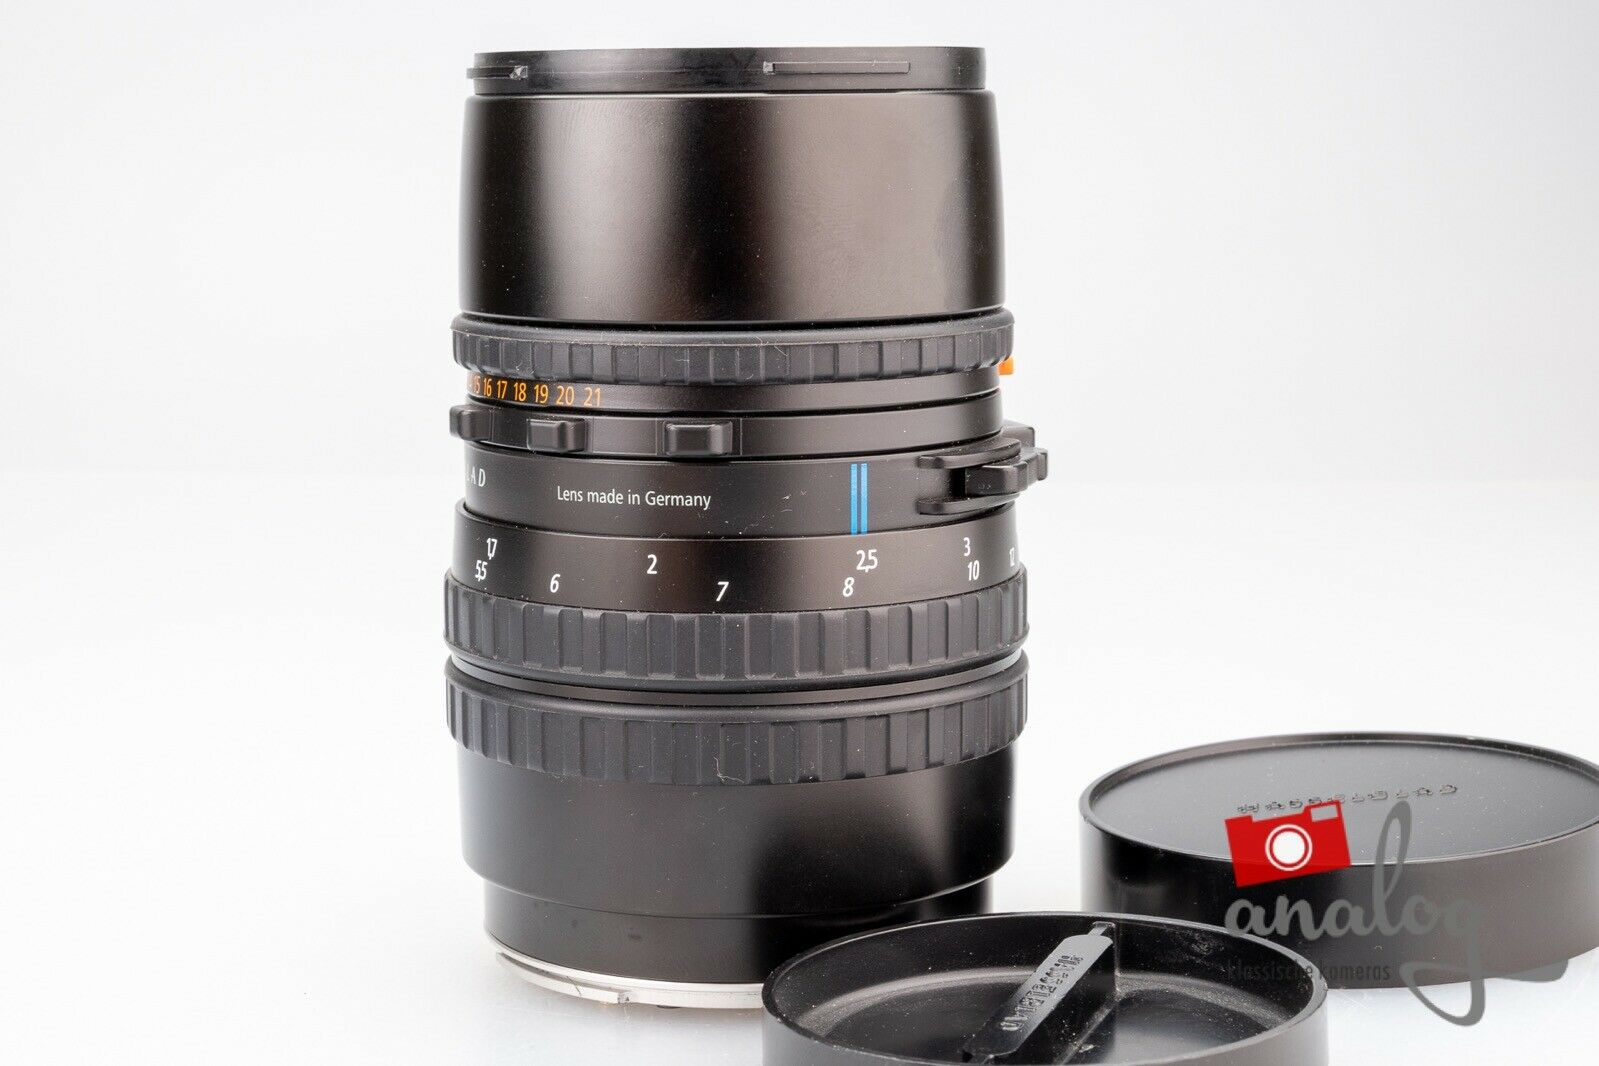 Hasselblad Carl Zeiss Sonnar CFE 180mm 4.0